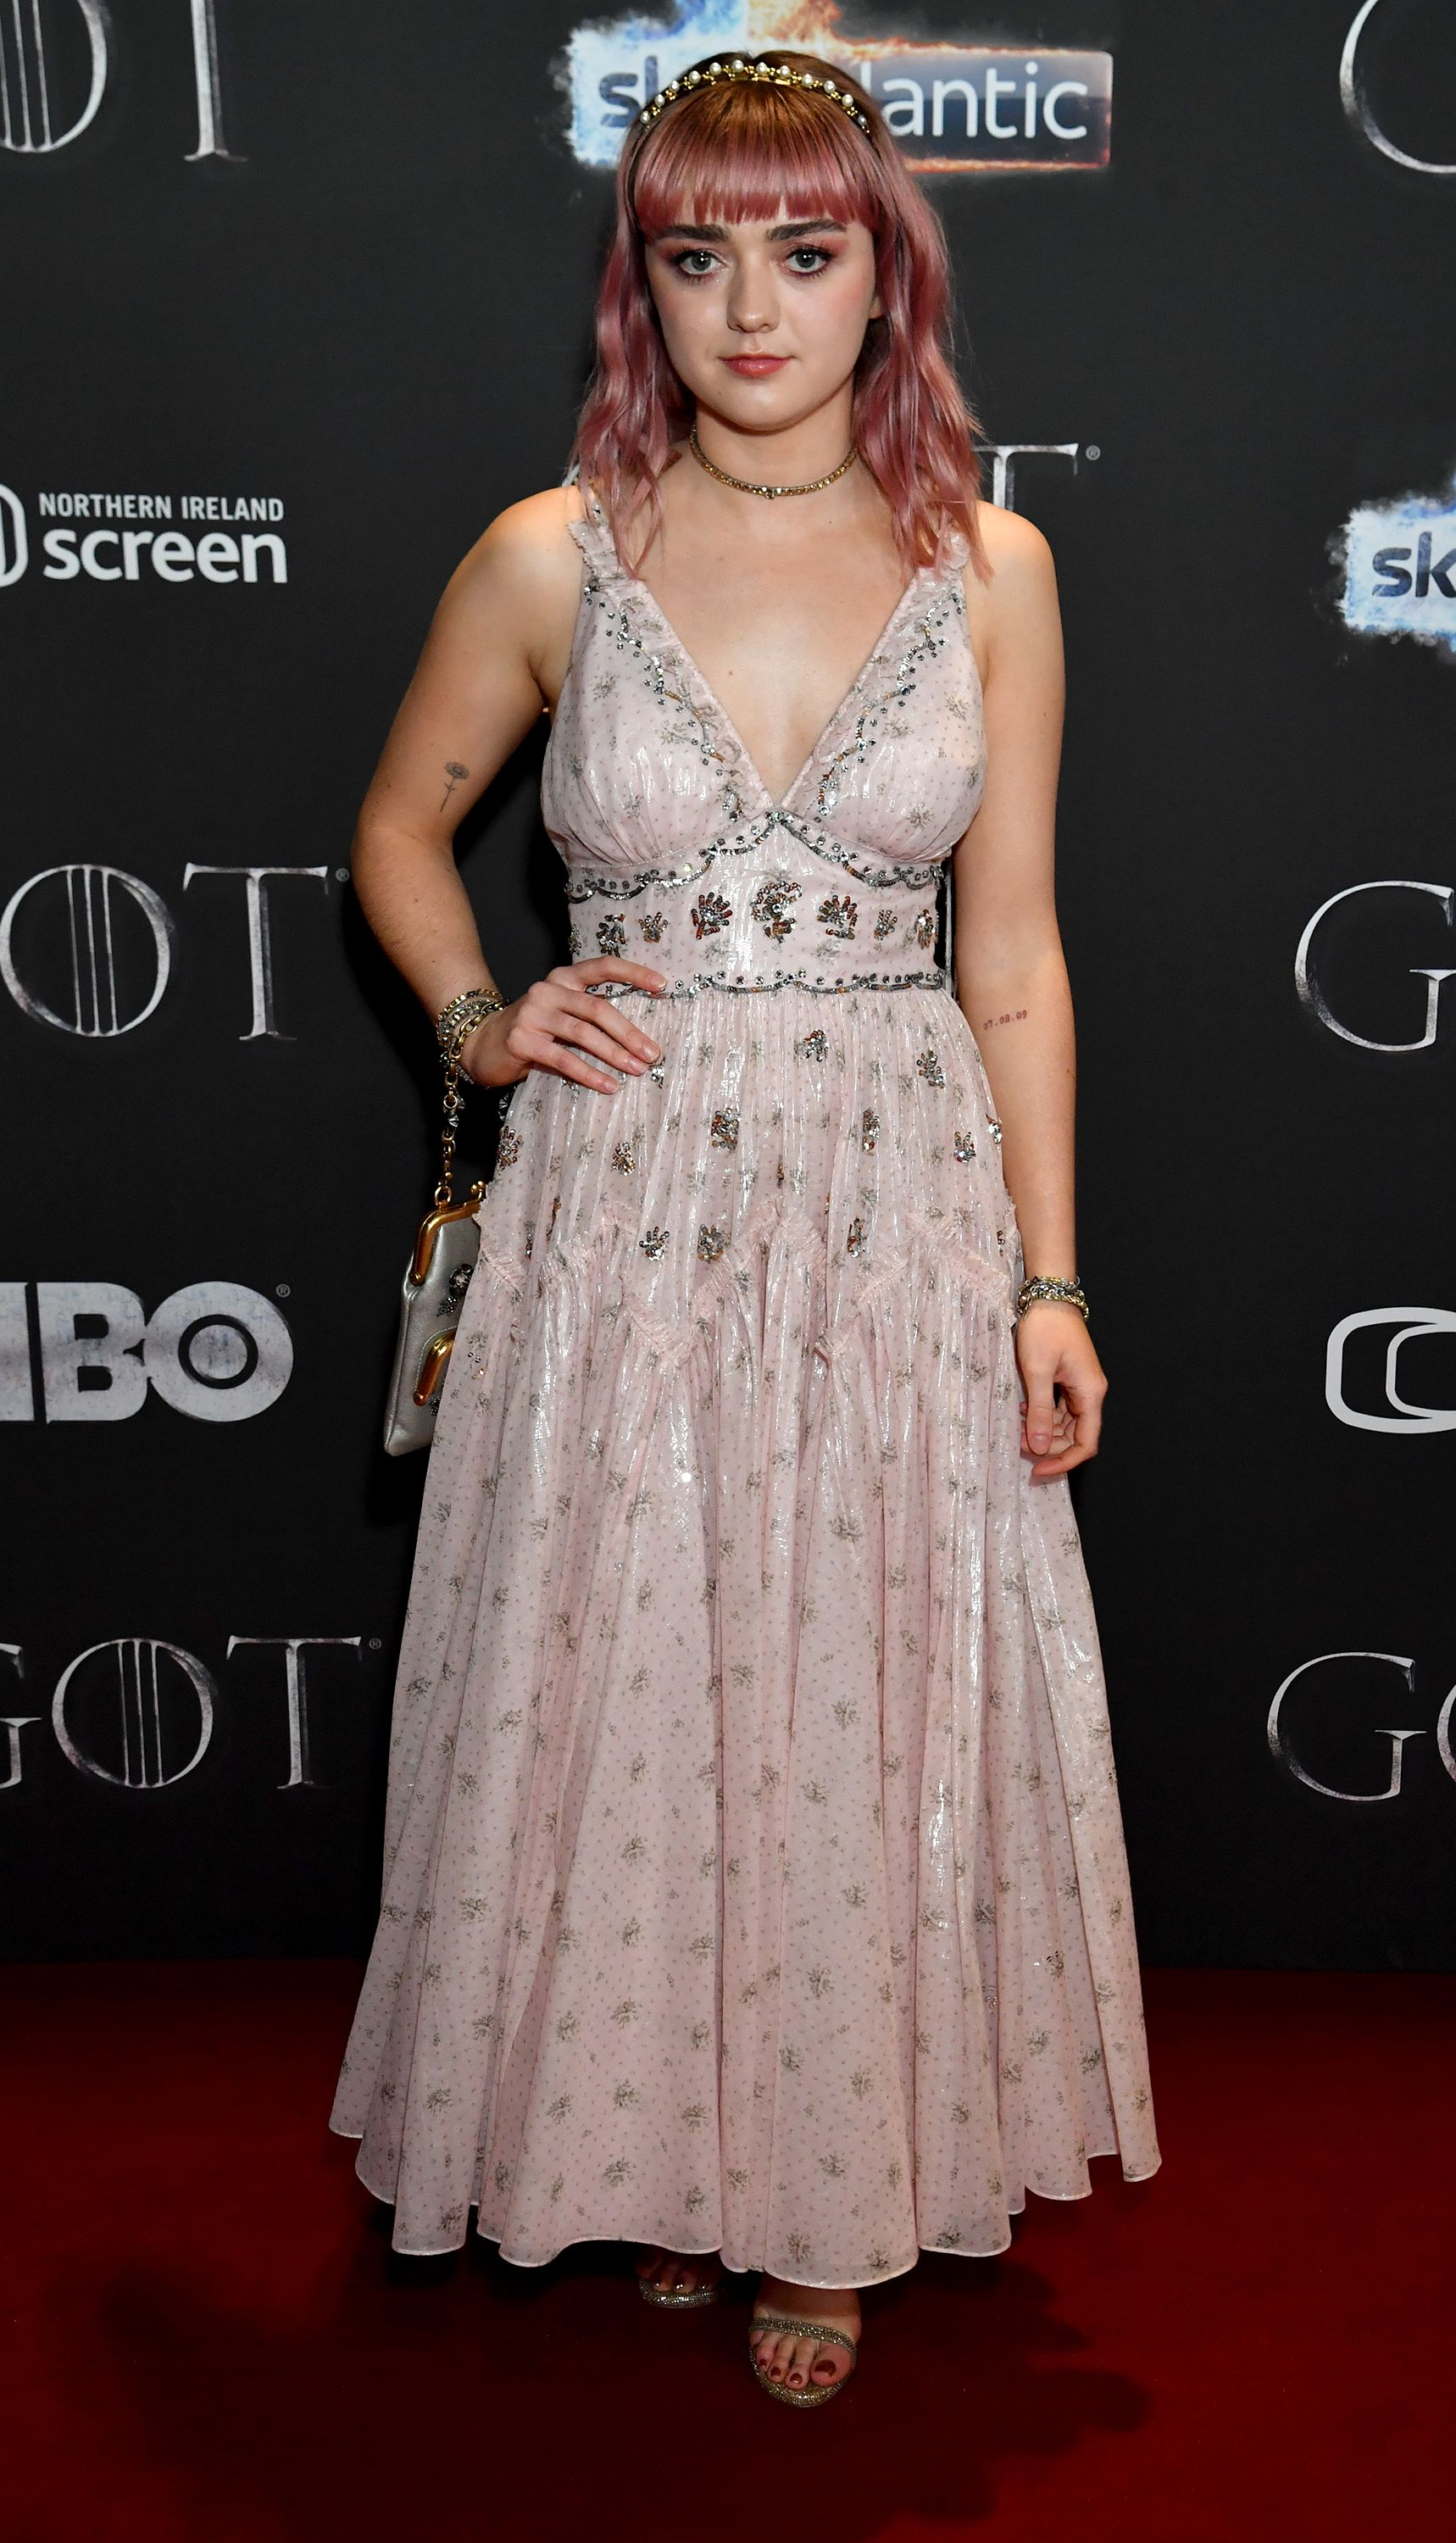 Game Of Thrones Is Over, But Our Love For The Leading Ladies' Red Carpet Style Lives On